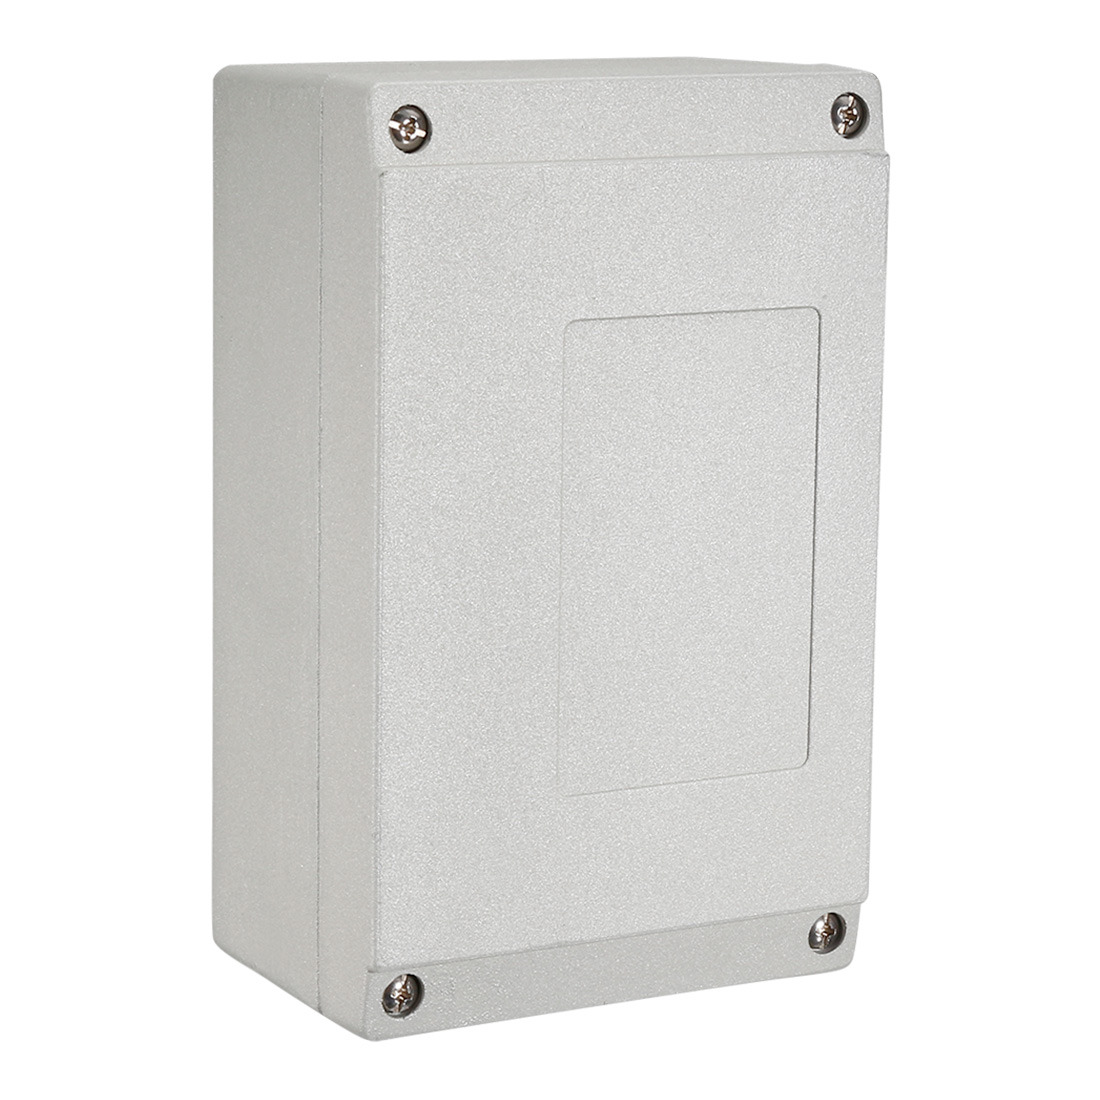 """6.3""""x3.9""""x2.5""""(160mmx100mmx65mm) Aluminum Junction Box Universal Electric Project Enclosure"""